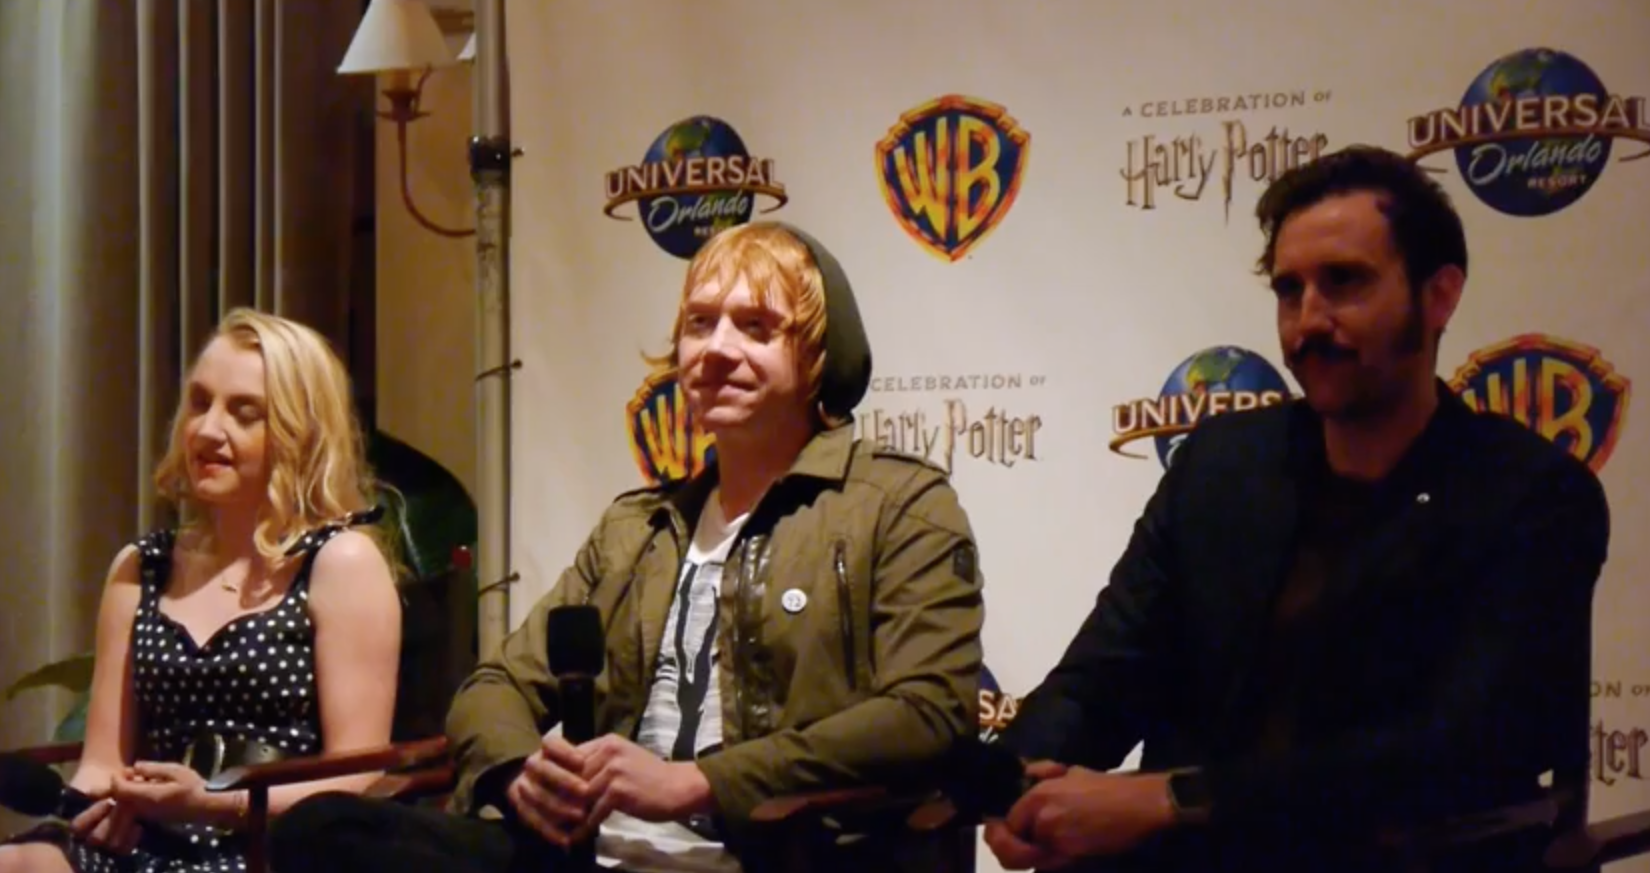 Media Q&A (A Celebration of Harry Potter): Part 1